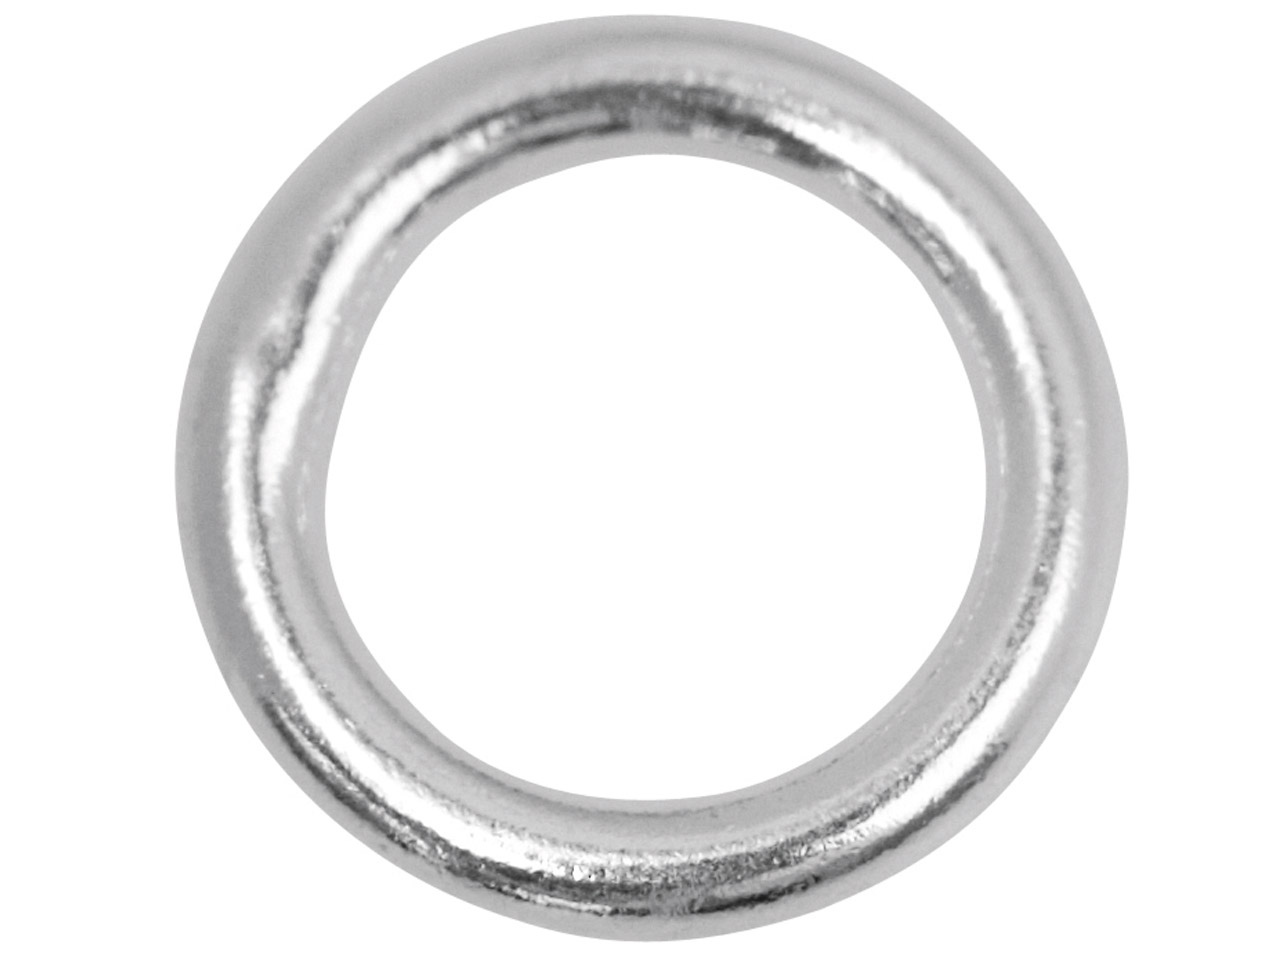 ddaecb16568e1 Sterling Silver 8mm Closed, Pack of 10, Jump Rings, 8mm Diameter X 1.2mm  Round Wire